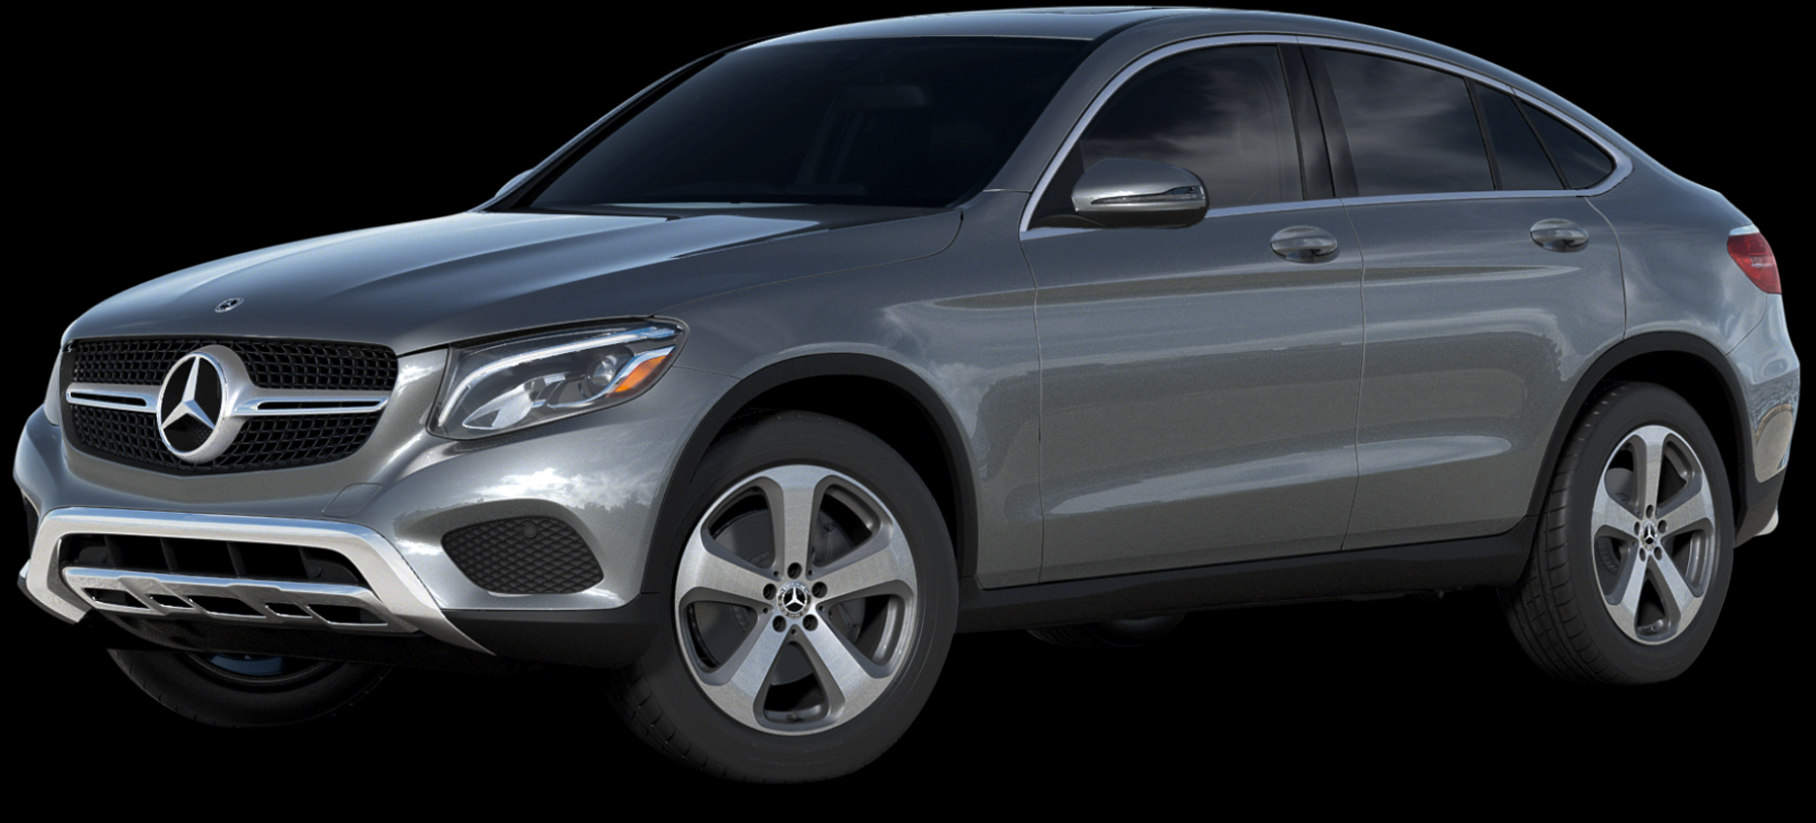 12 Mercedes-Benz GLC 12 Incentives, Specials & Offers in ..